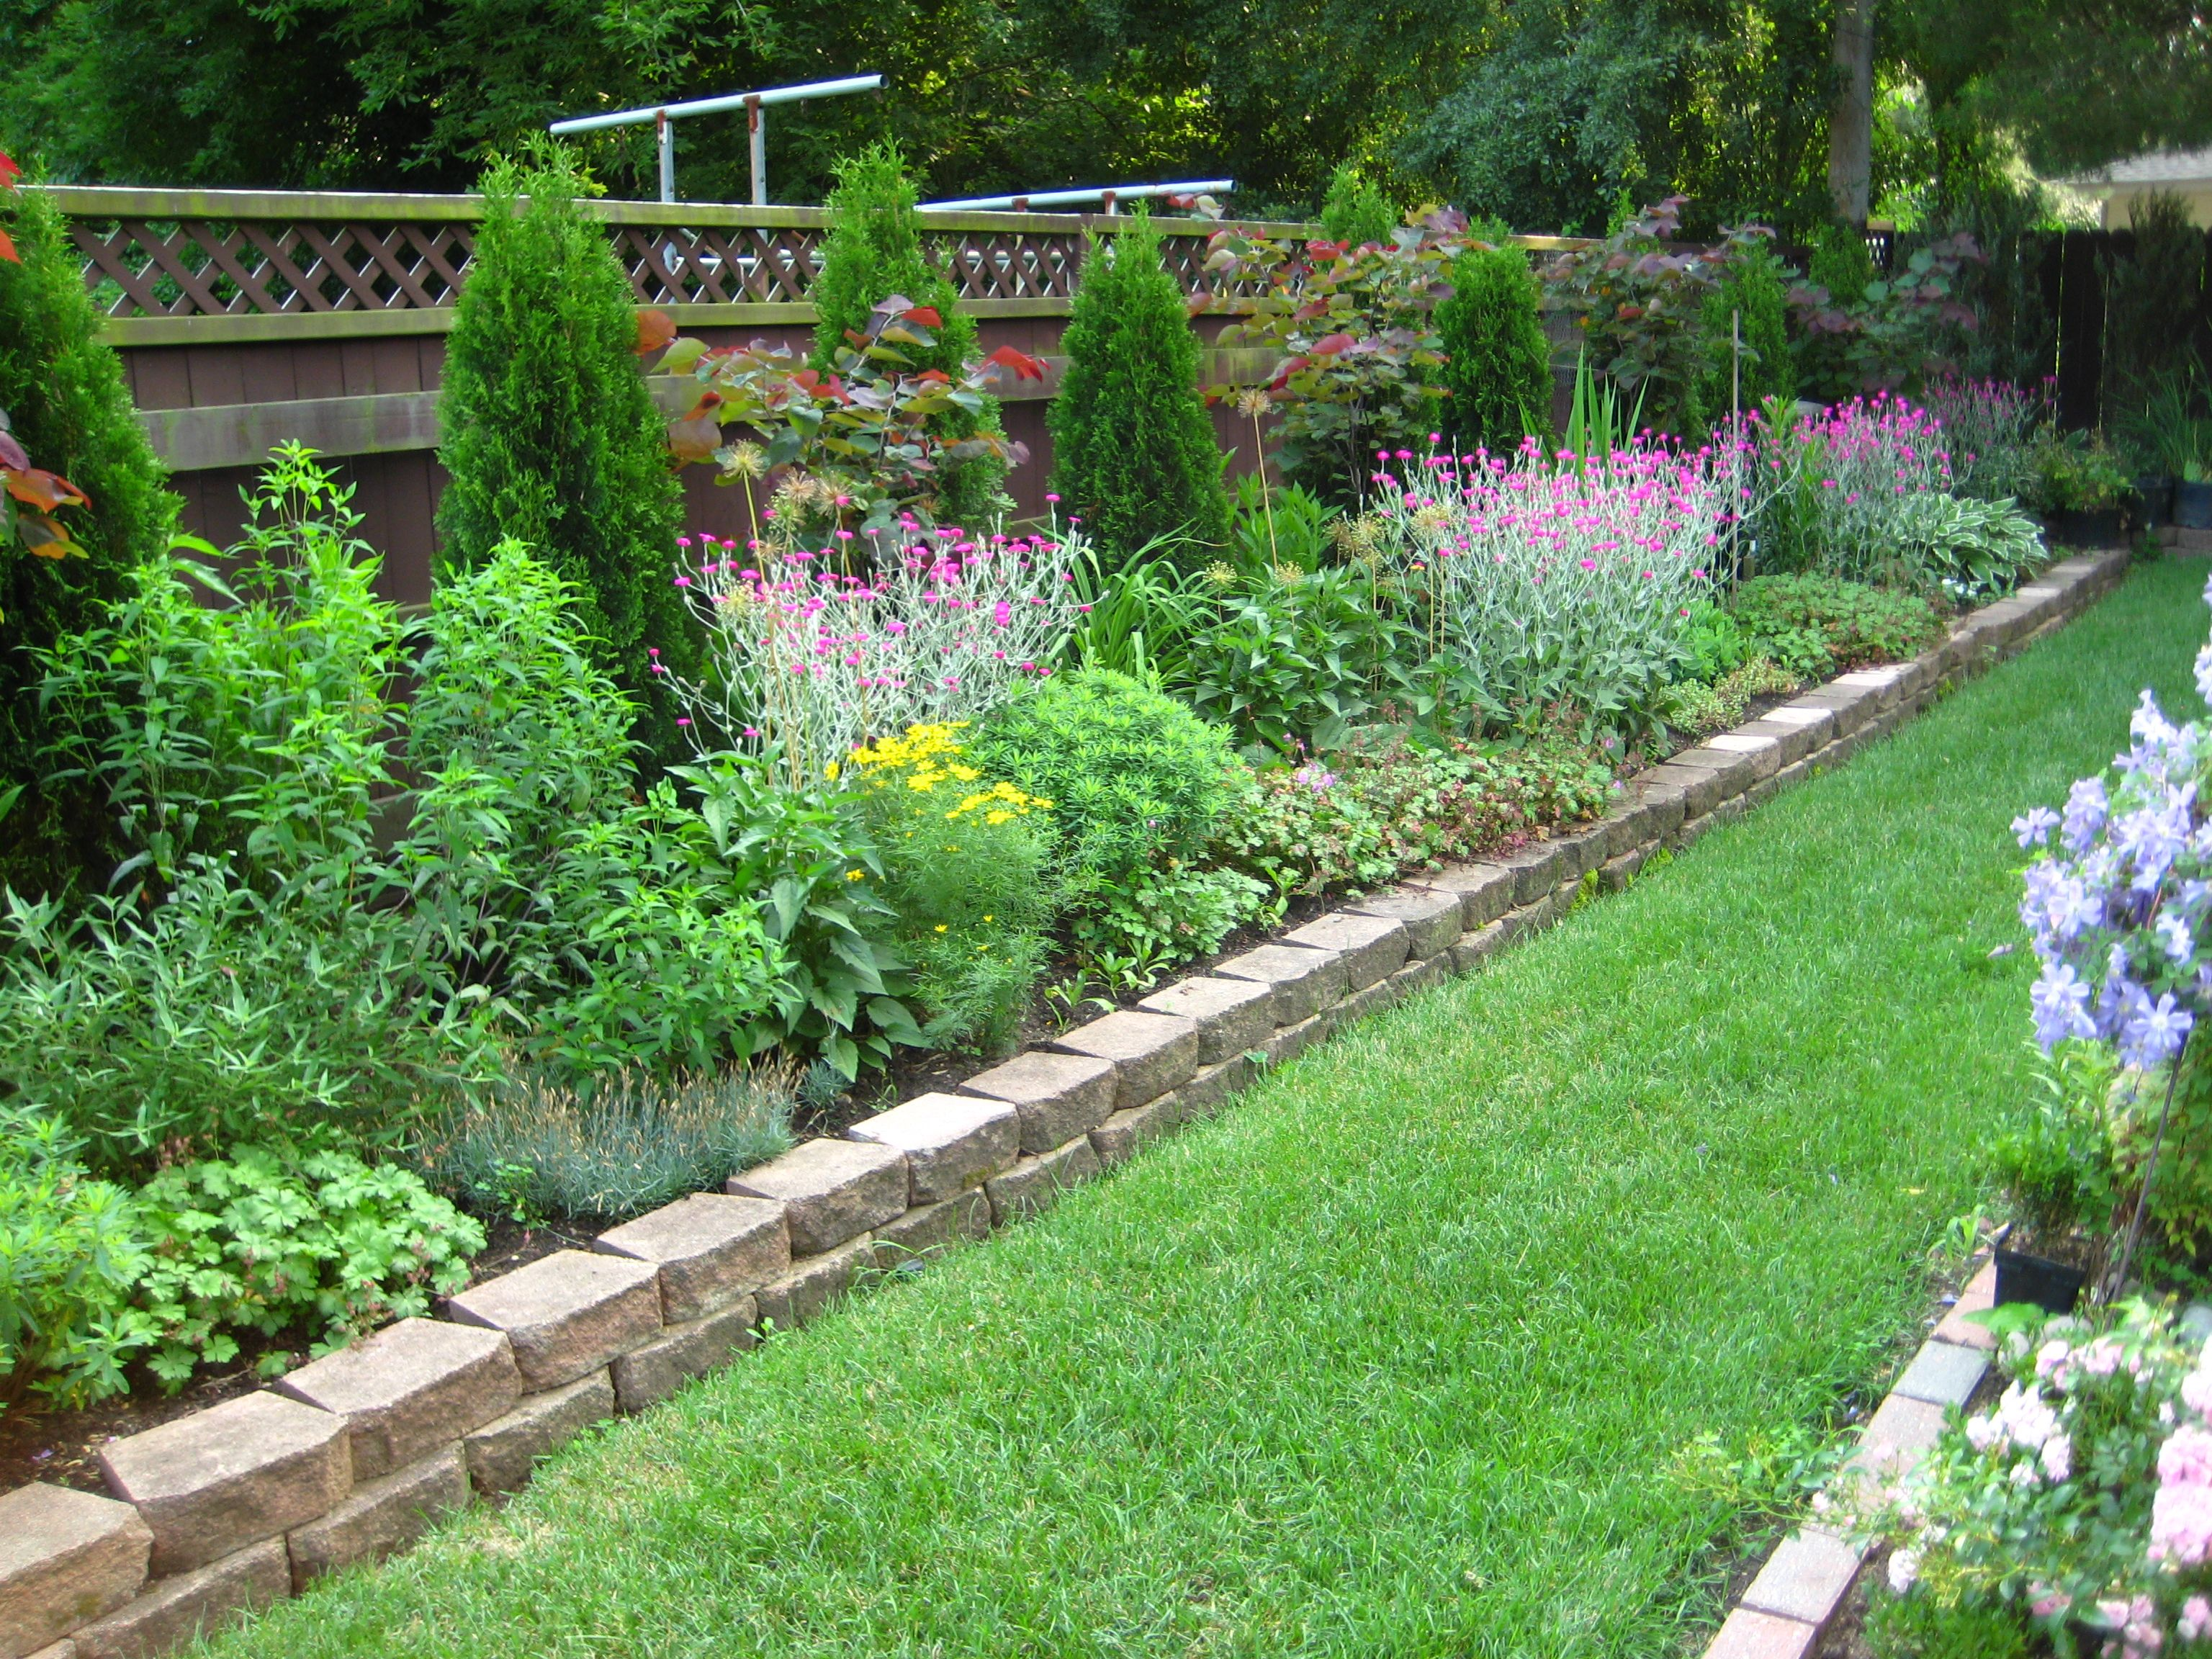 Simple backyard flower gardens - Backyard Landscaping Remodeling Your Backyard Before As Now Has So Many Ideas Backyard